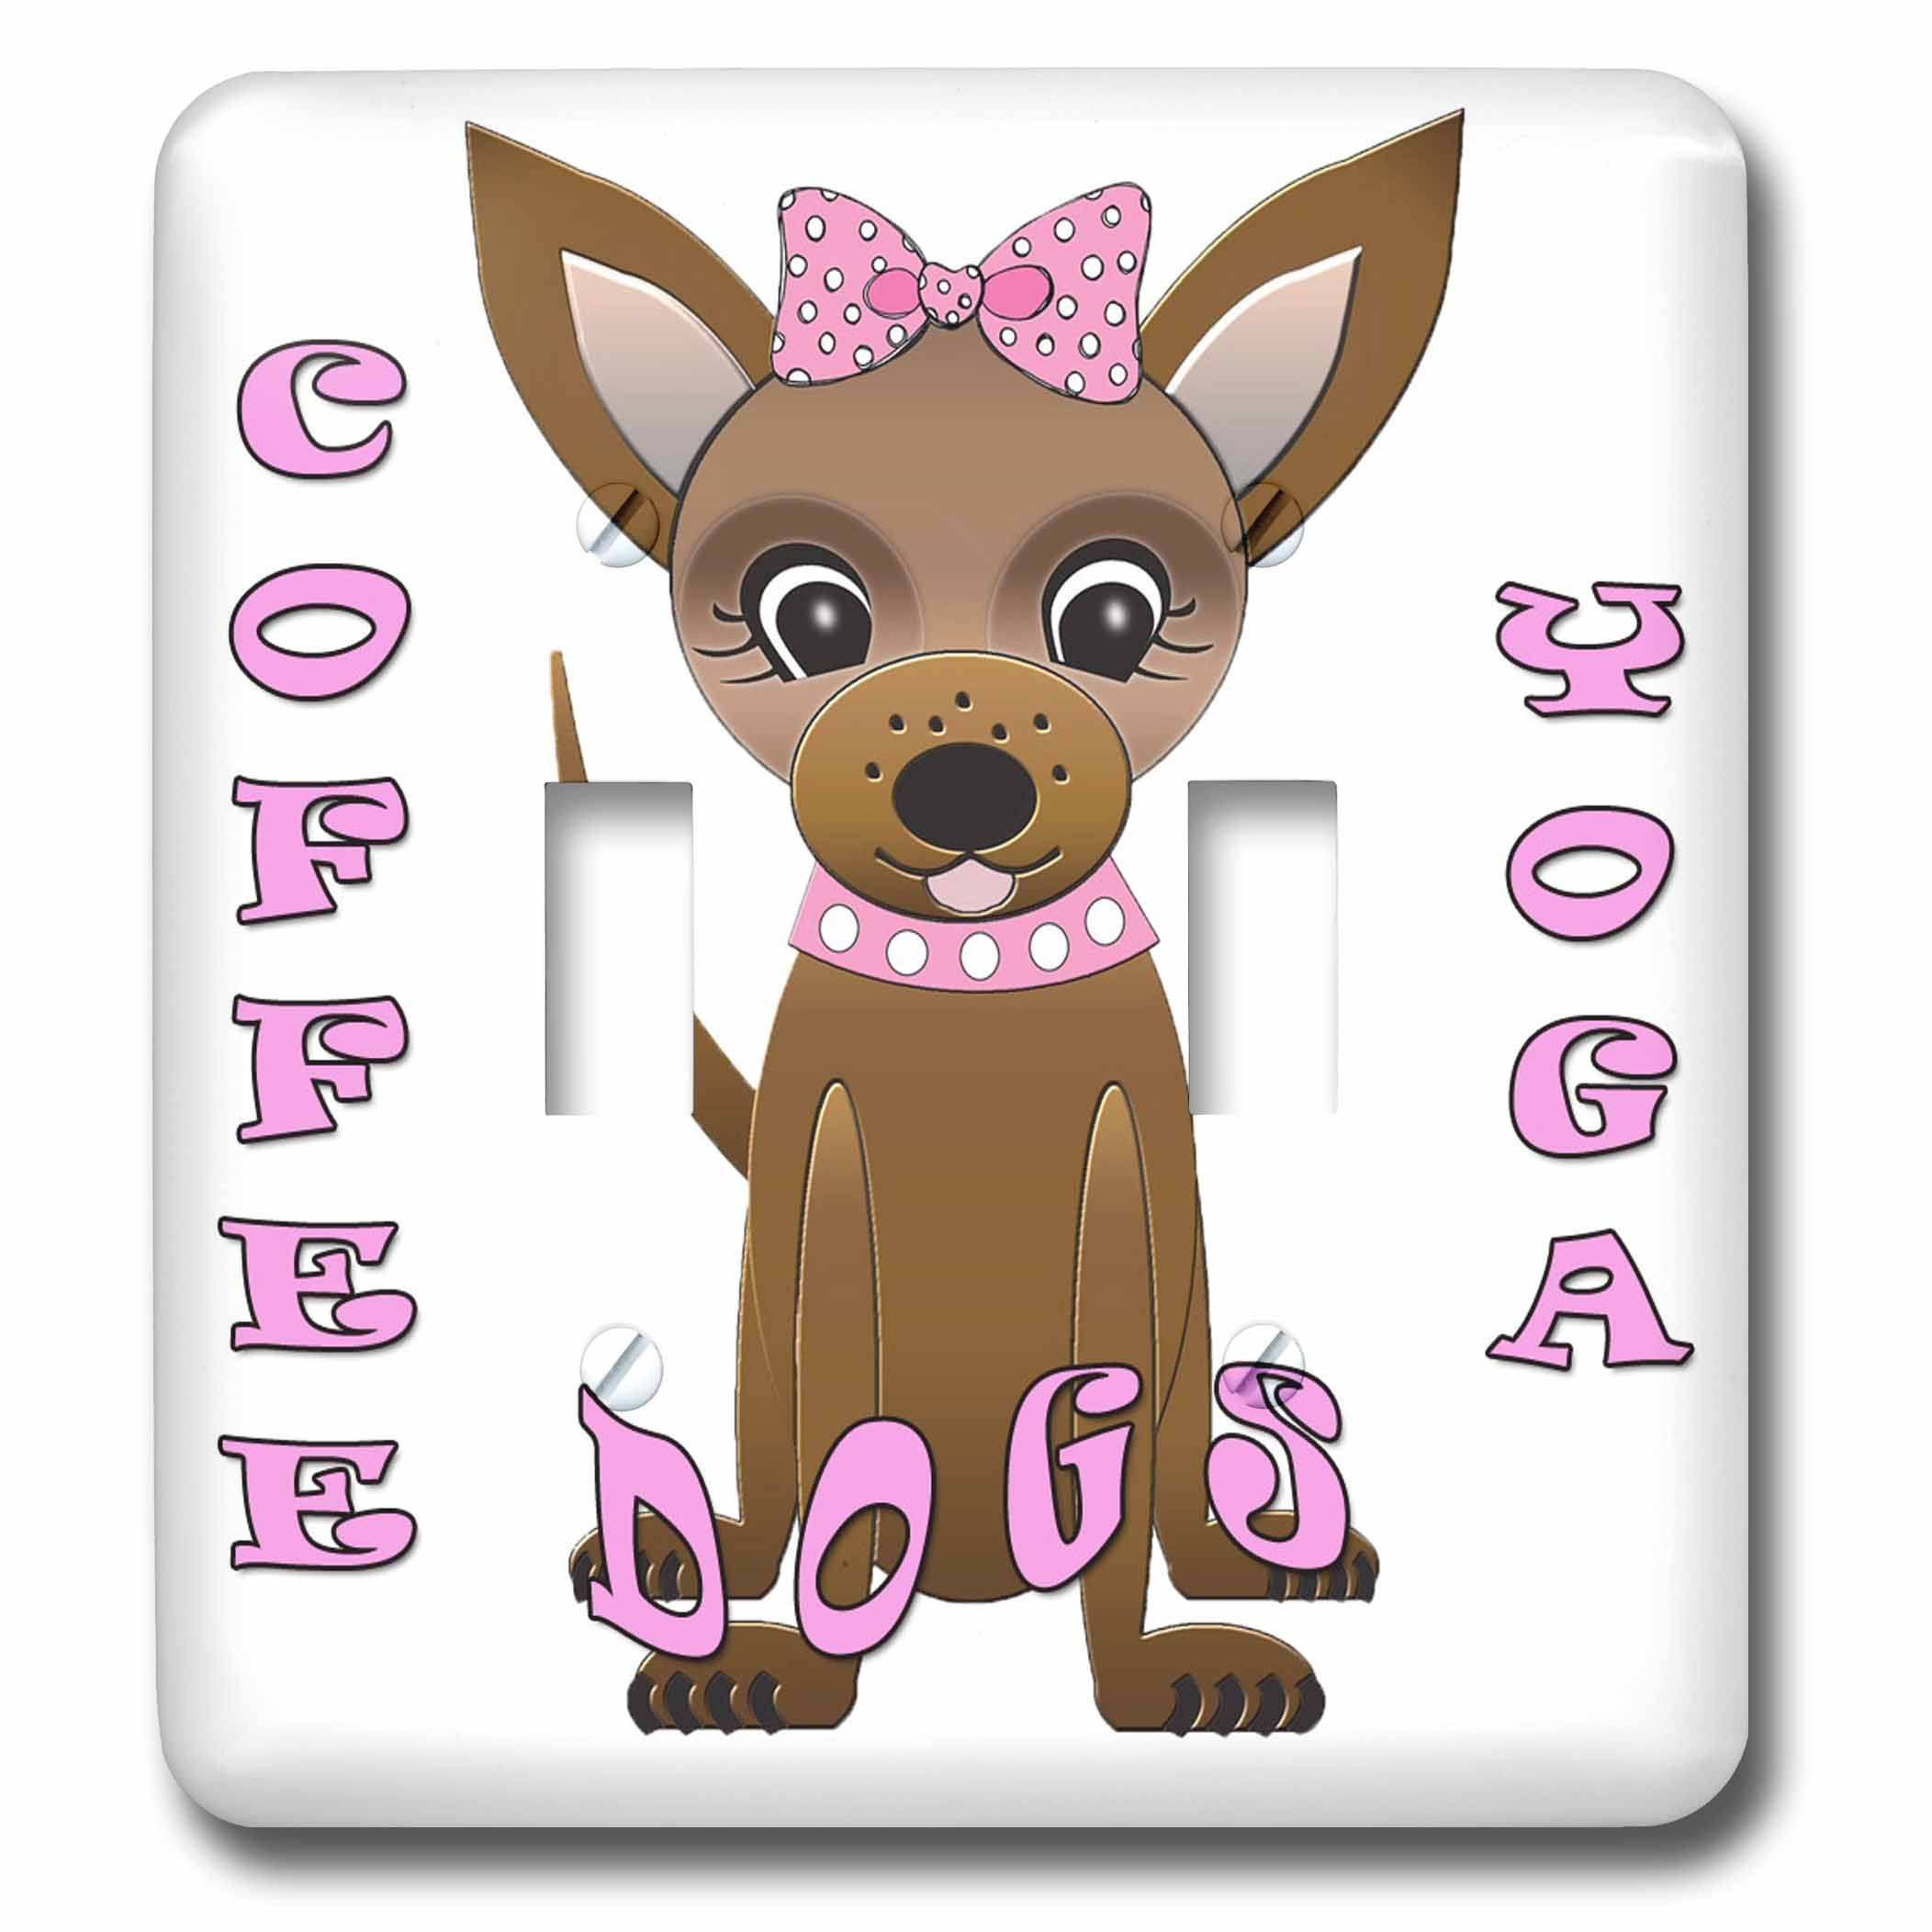 drose rinapiro dogs quotes coffee dogs yoga funny quotes